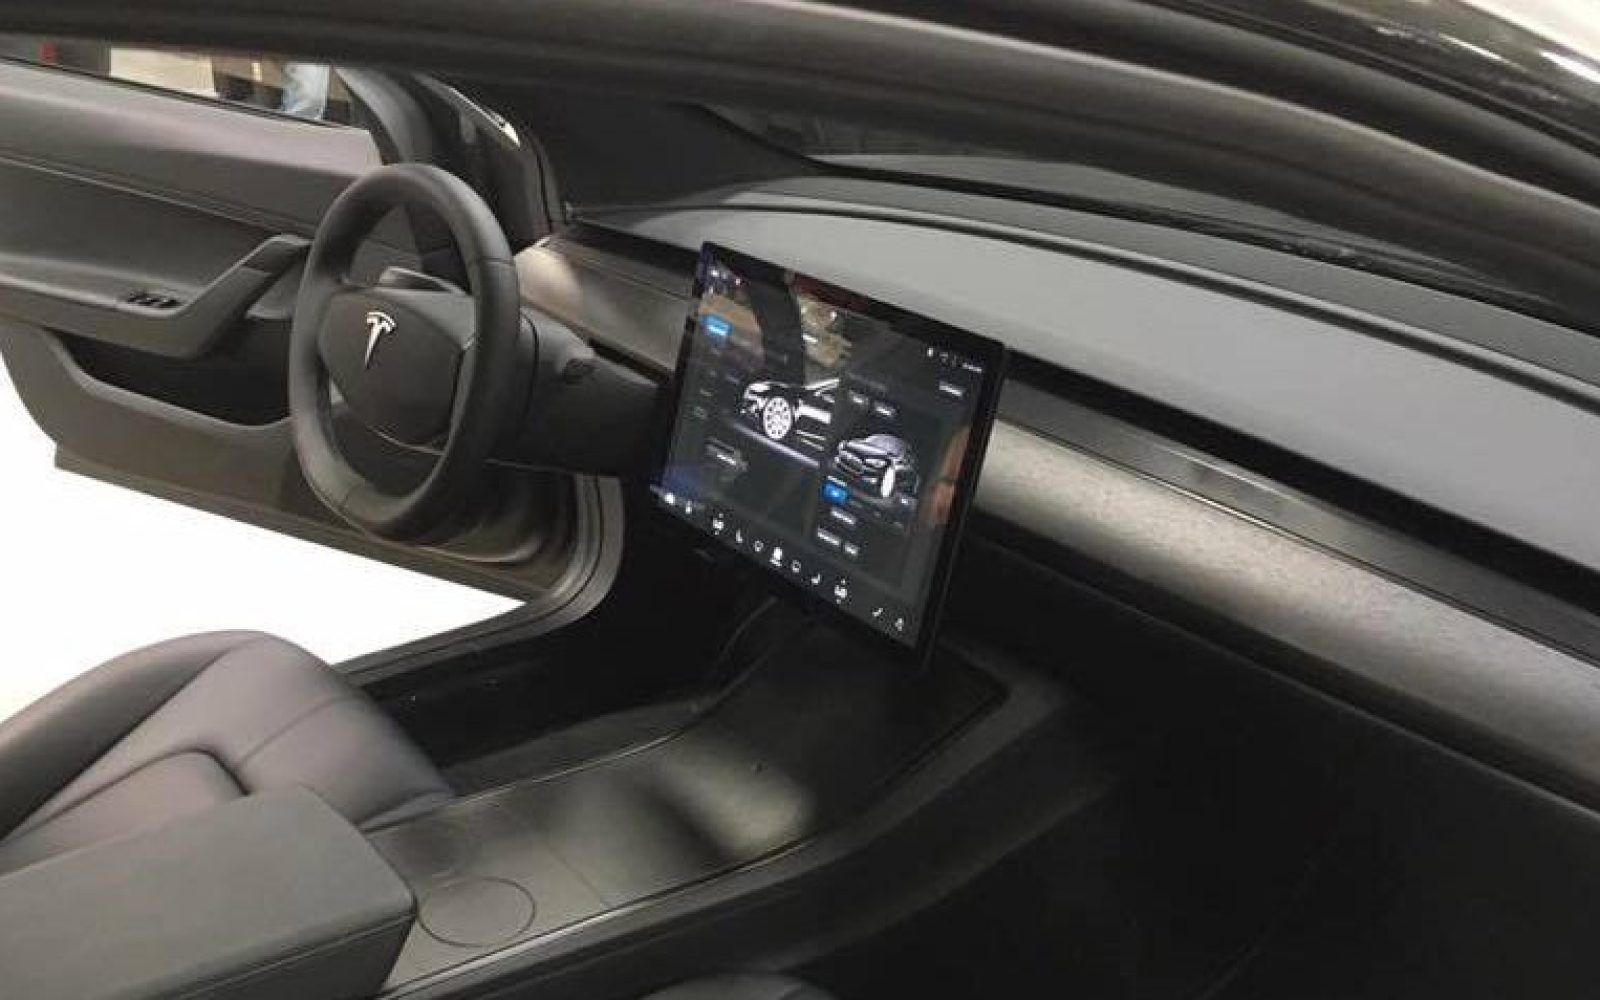 New Tesla Model 3 prototype pictures with rare shot of the interior [Gallery]